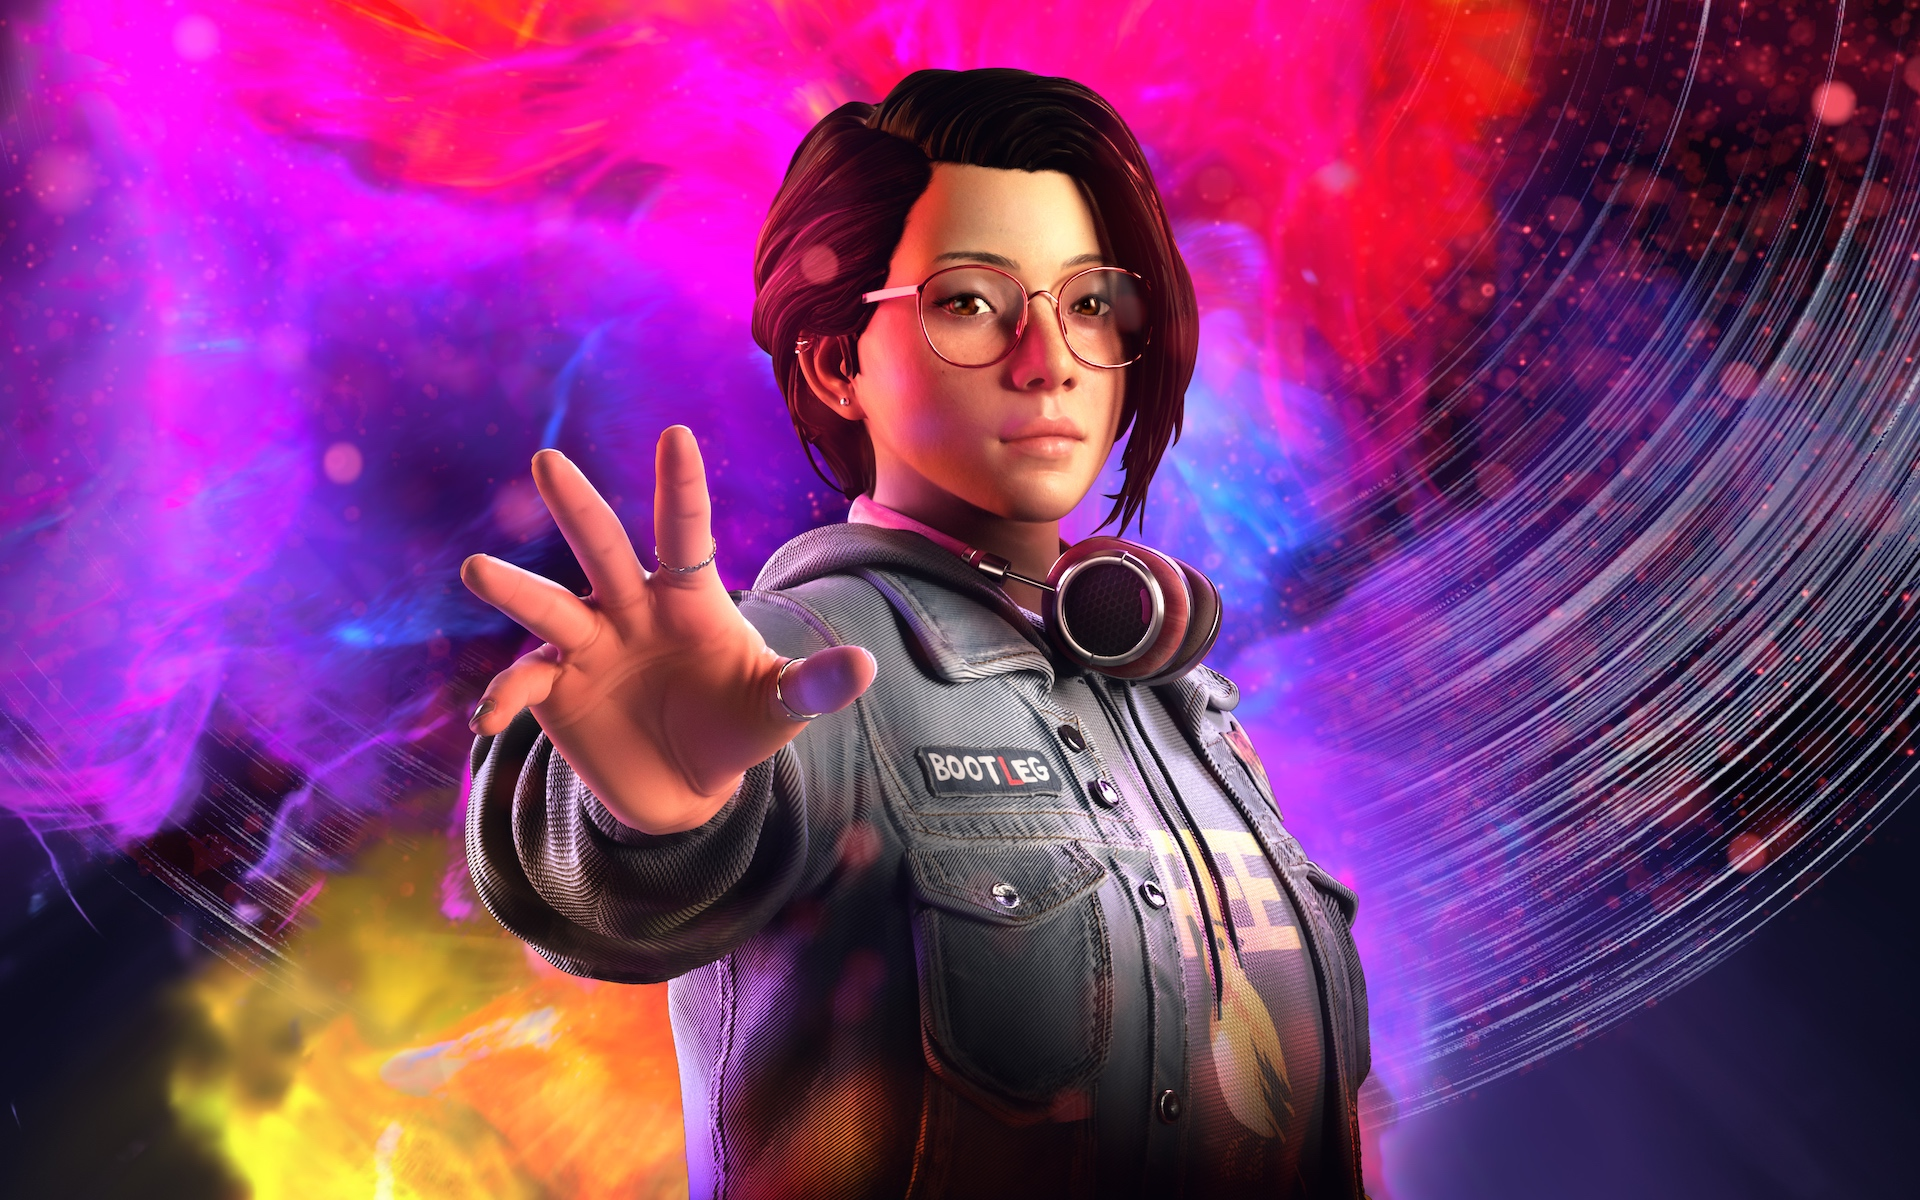 Alex Chen from Life is Strange: True Colors with a rainbow-colored aura behind her